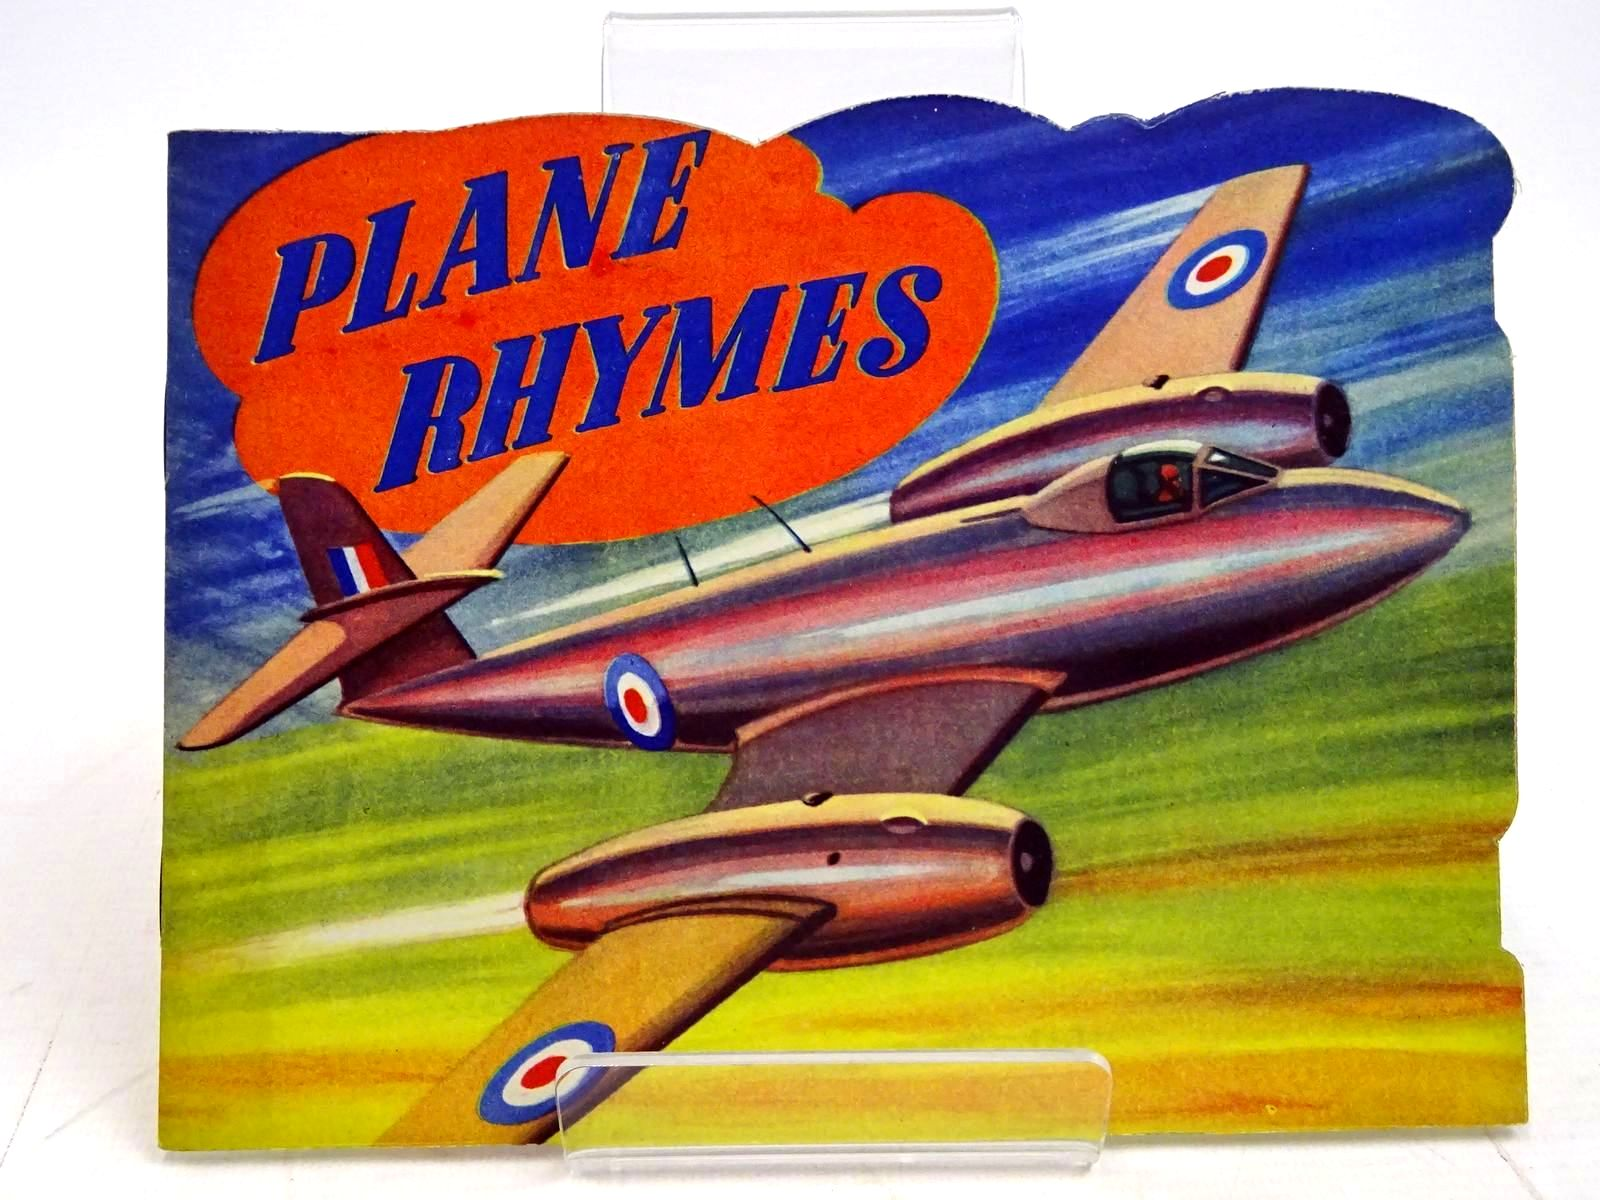 Photo of PLANE RHYMES published by Birn Brothers Ltd. (STOCK CODE: 2131557)  for sale by Stella & Rose's Books